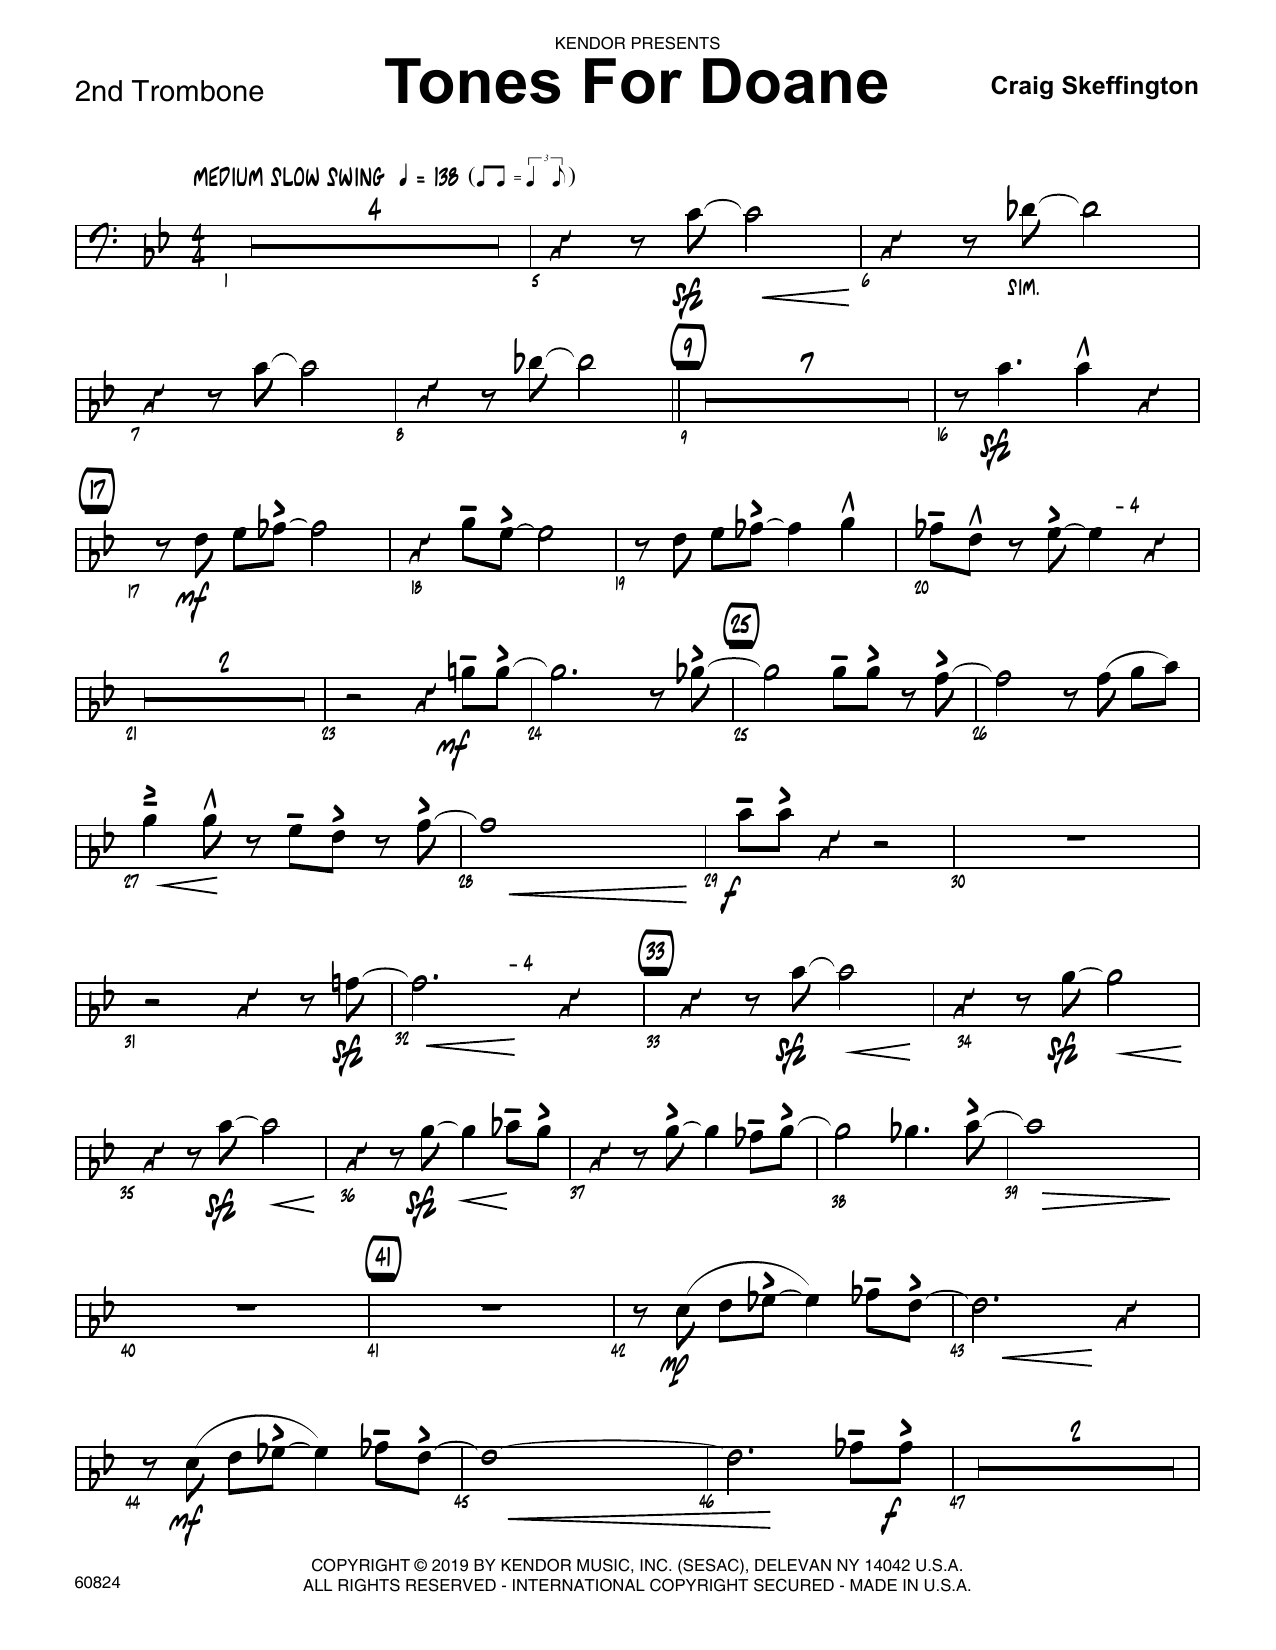 Craig Skeffington Tones For Doane - 2nd Trombone sheet music notes and chords. Download Printable PDF.